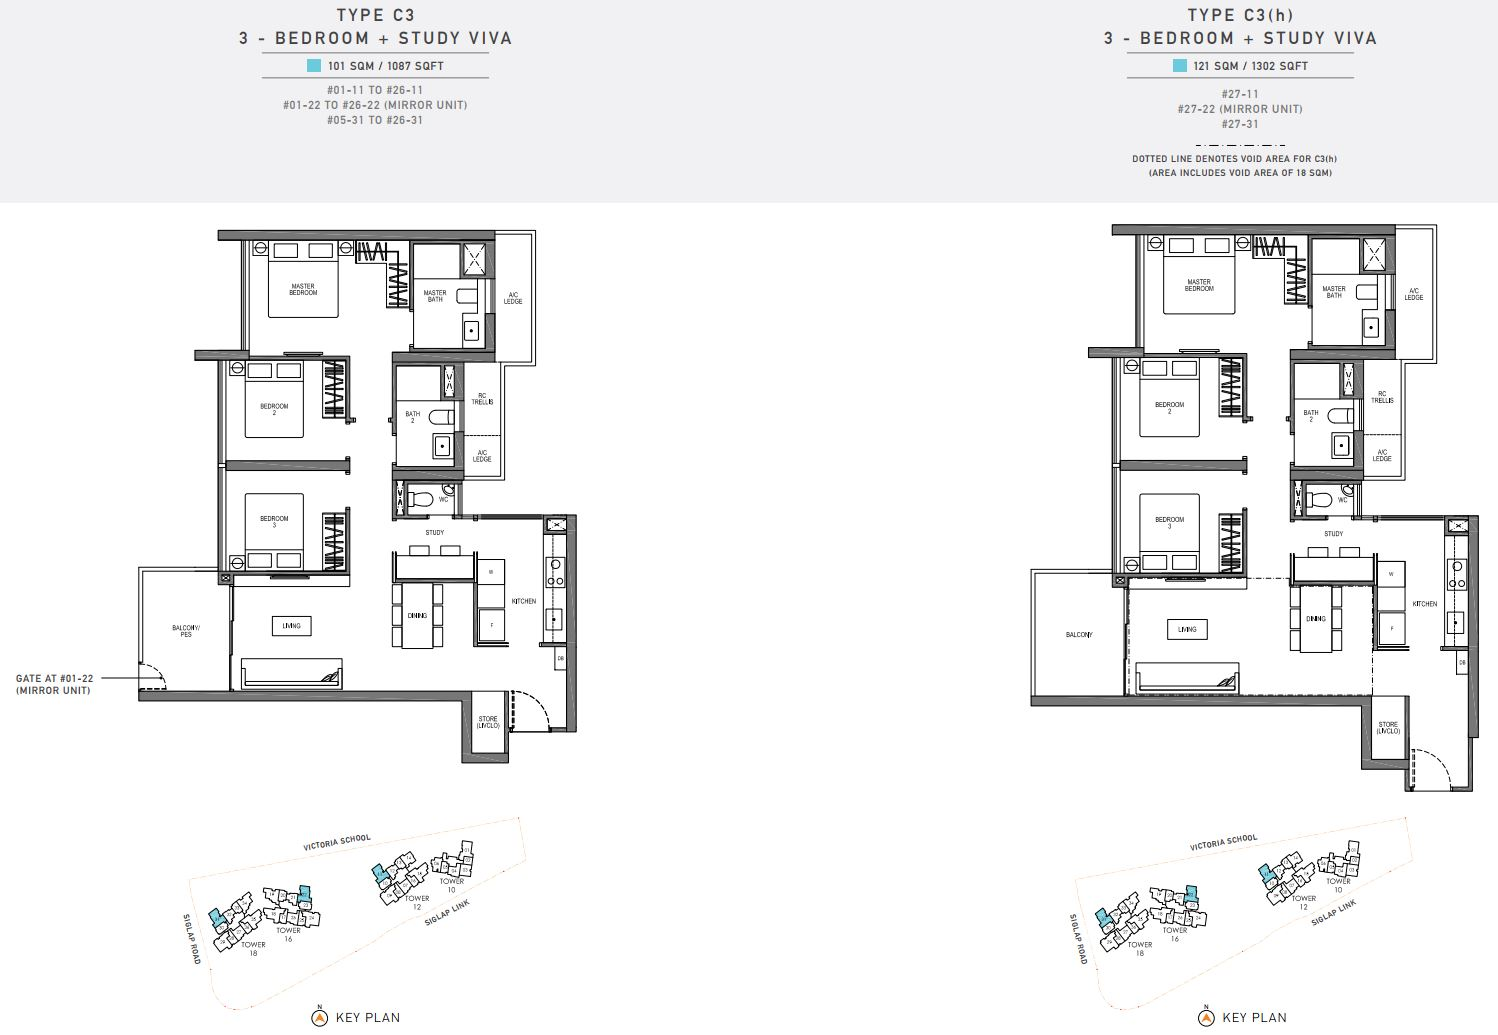 Seaside Residences FloorPlan - 3 Bedroom + Study Viva